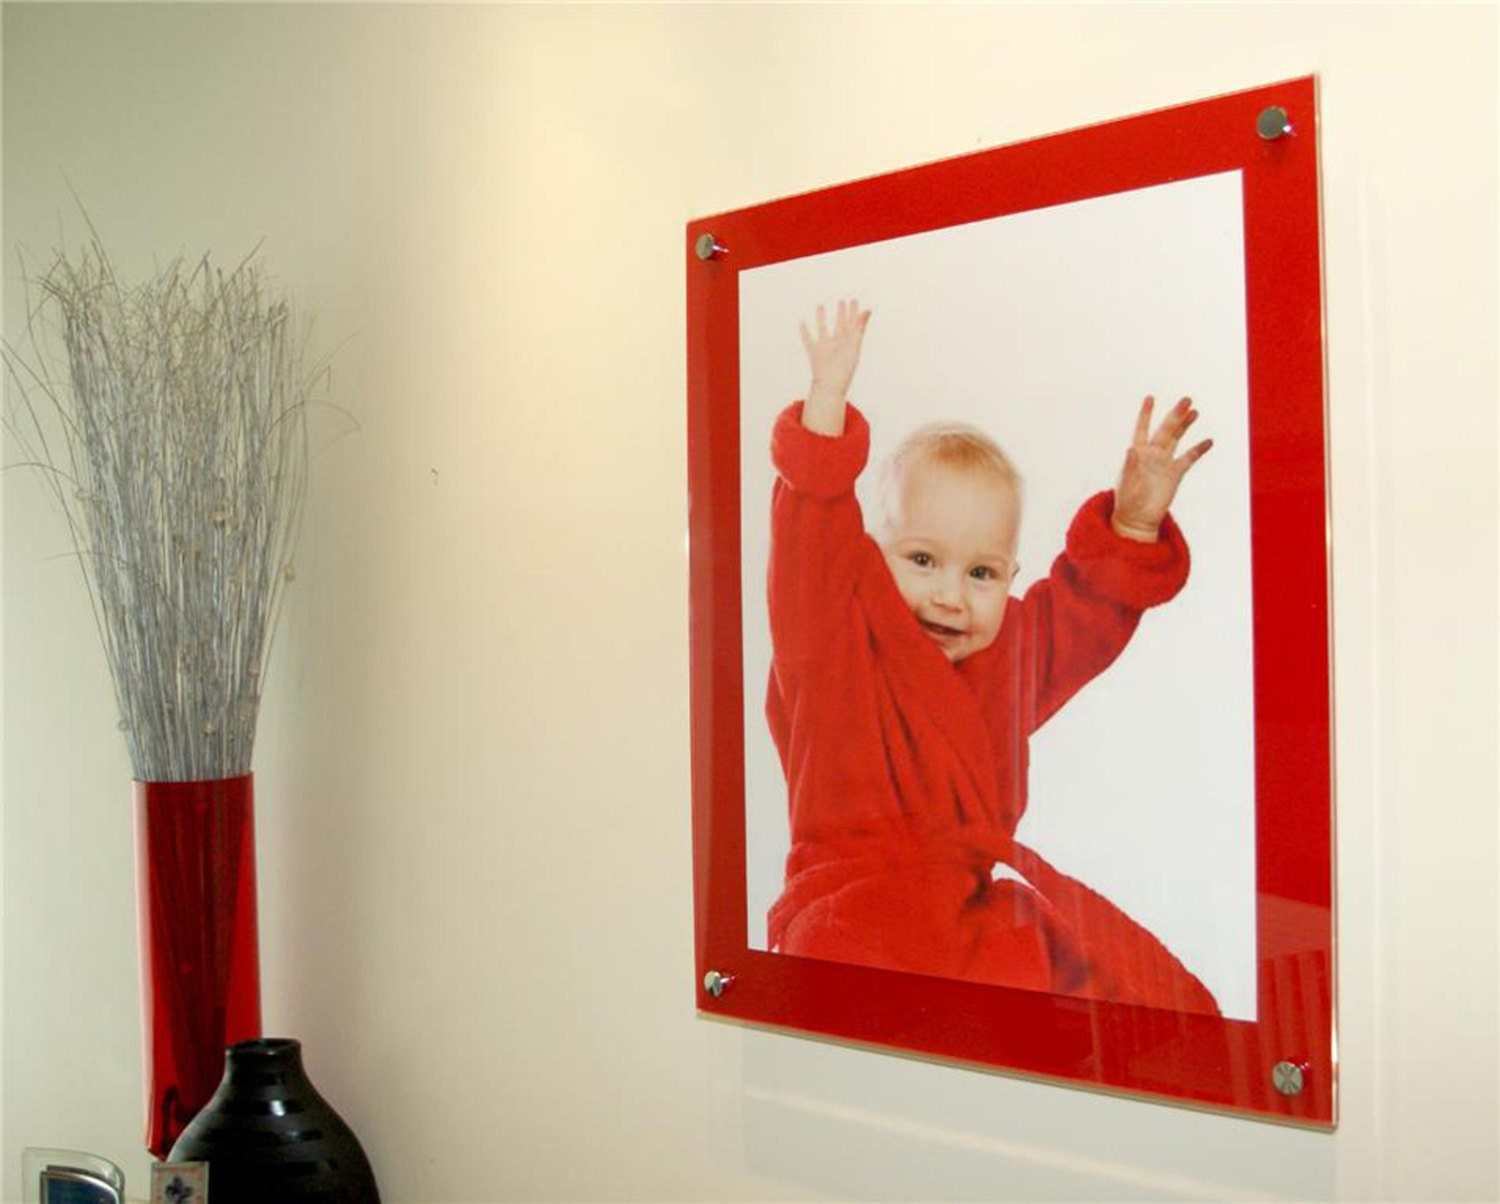 Cheshire acrylic chilli red 10mm picture wall mount frame for 8 x gallery photo gallery photo jeuxipadfo Gallery